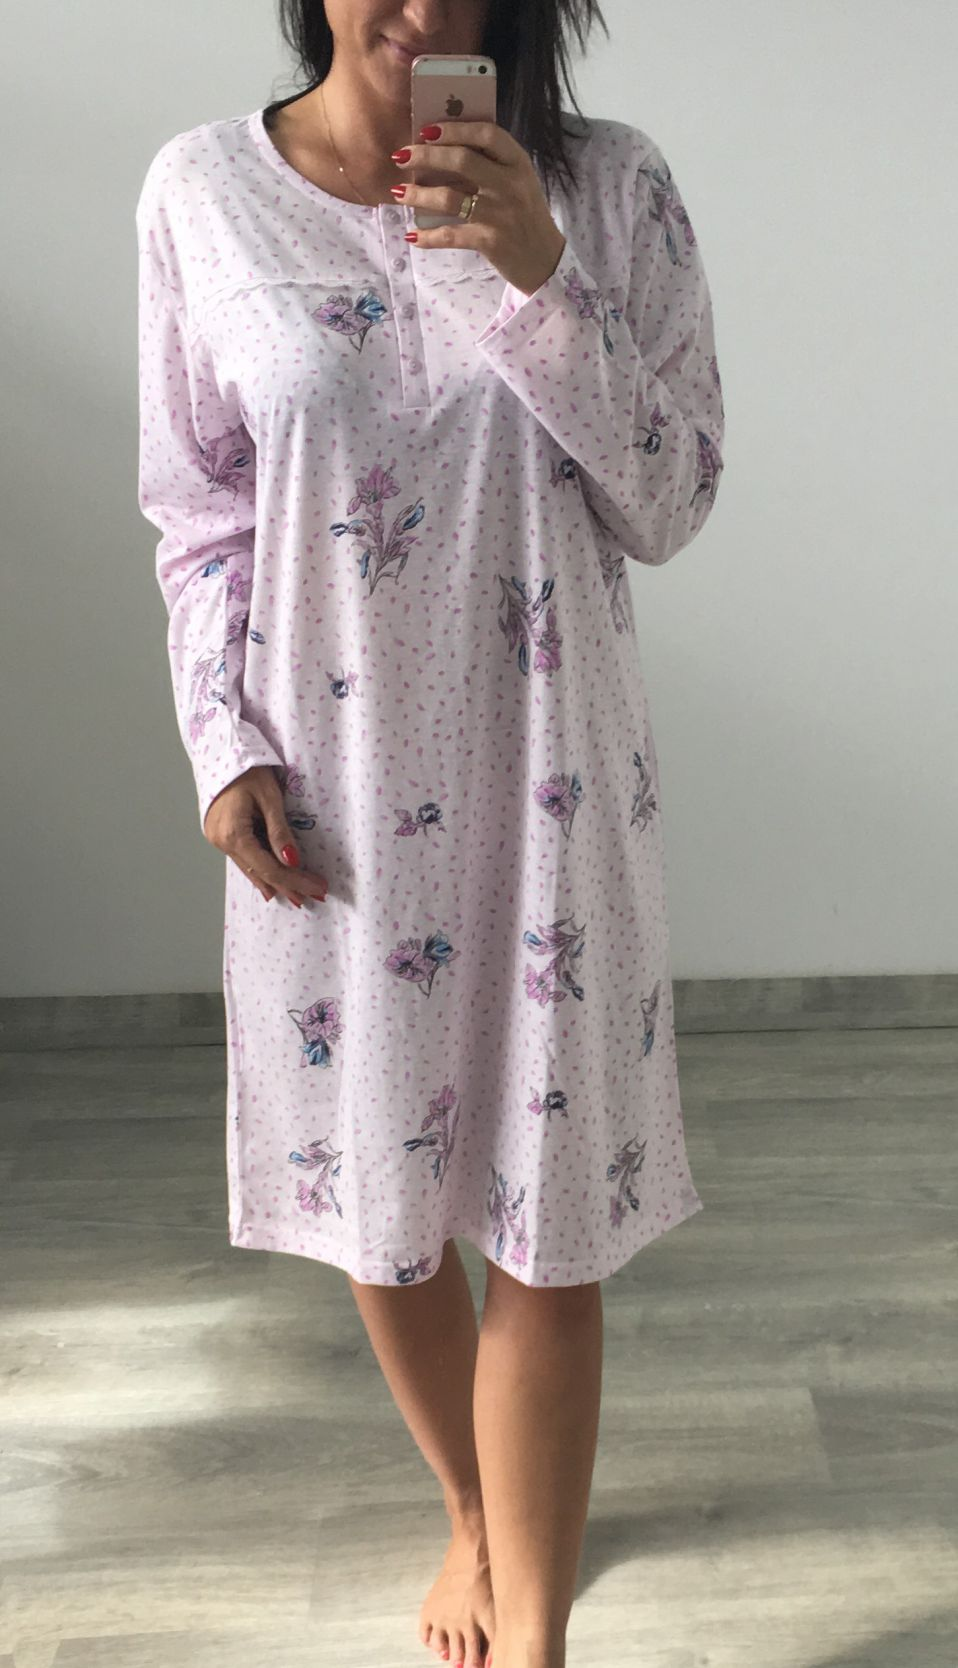 Nightgown Valerie Dream - LP8457